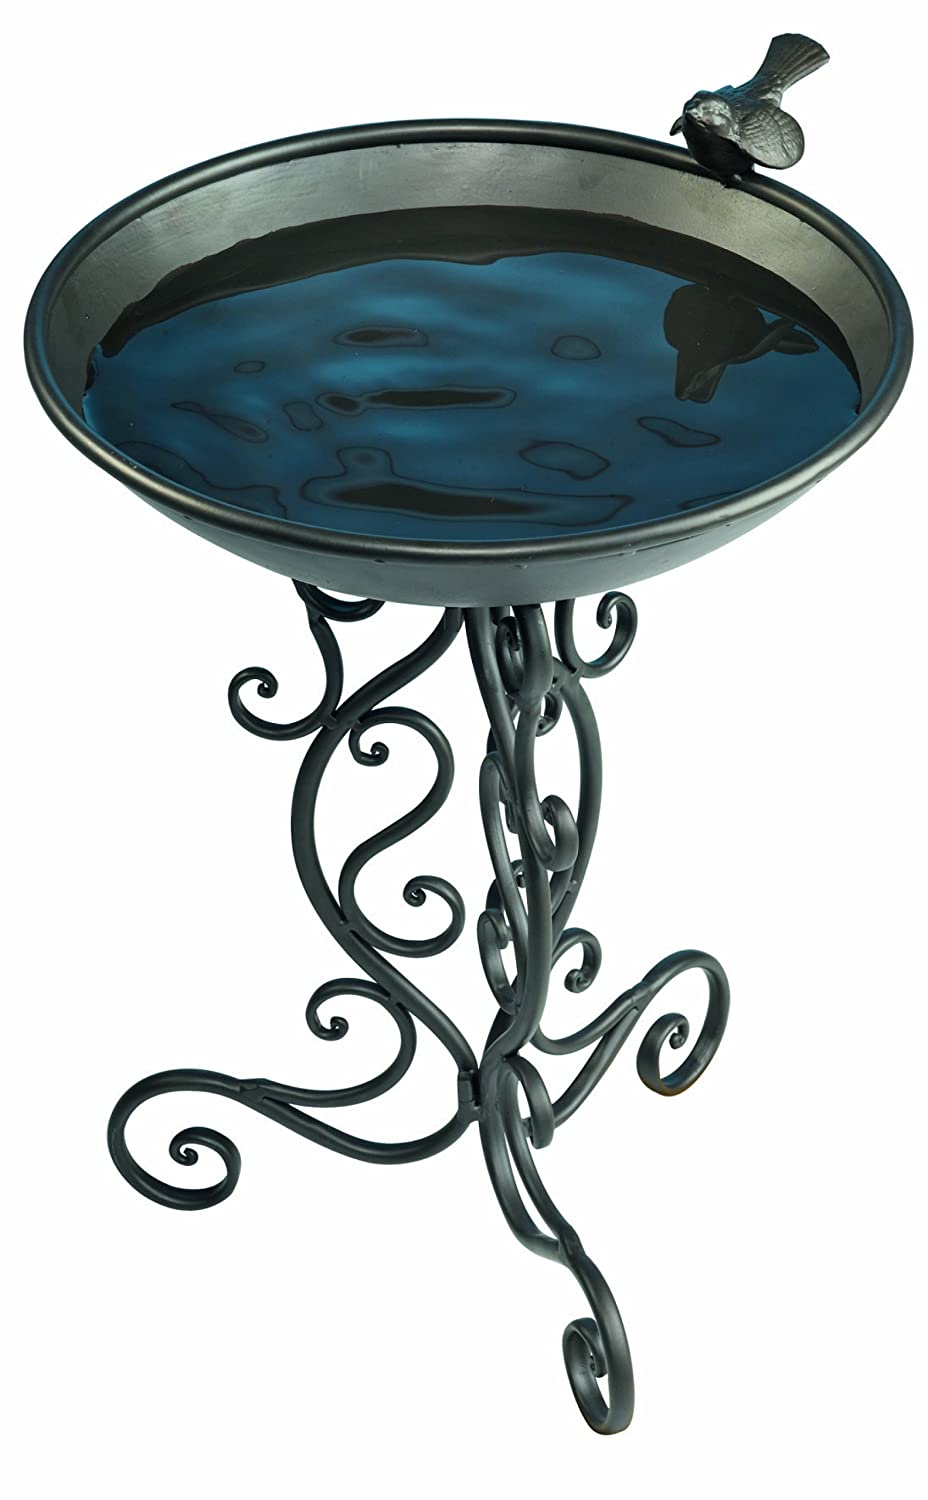 Amazon : Gardman Ba01272 Ornate Metal Bird Bath, 14